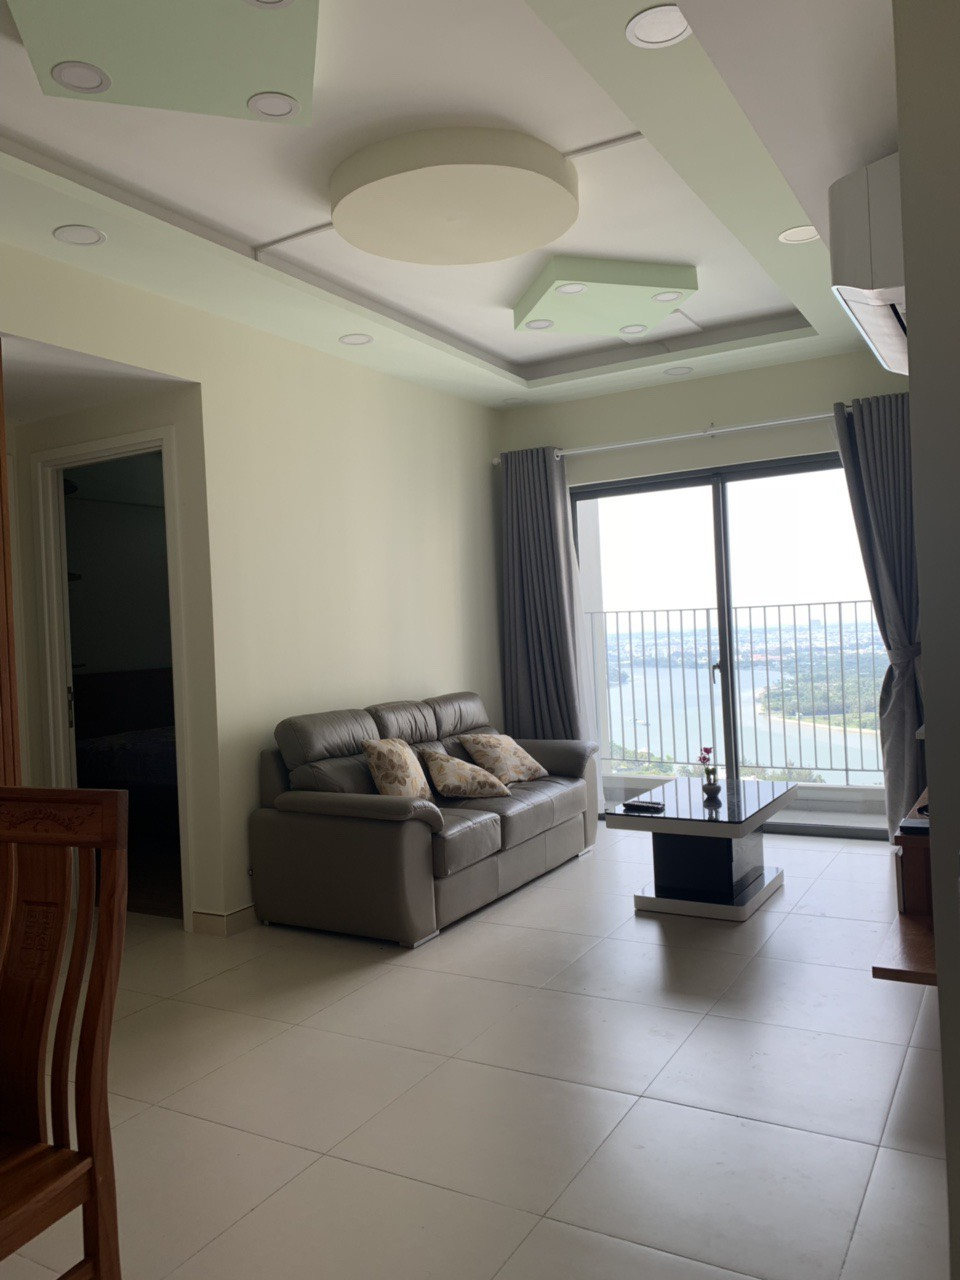 Apartment for rent D2142628 (13)